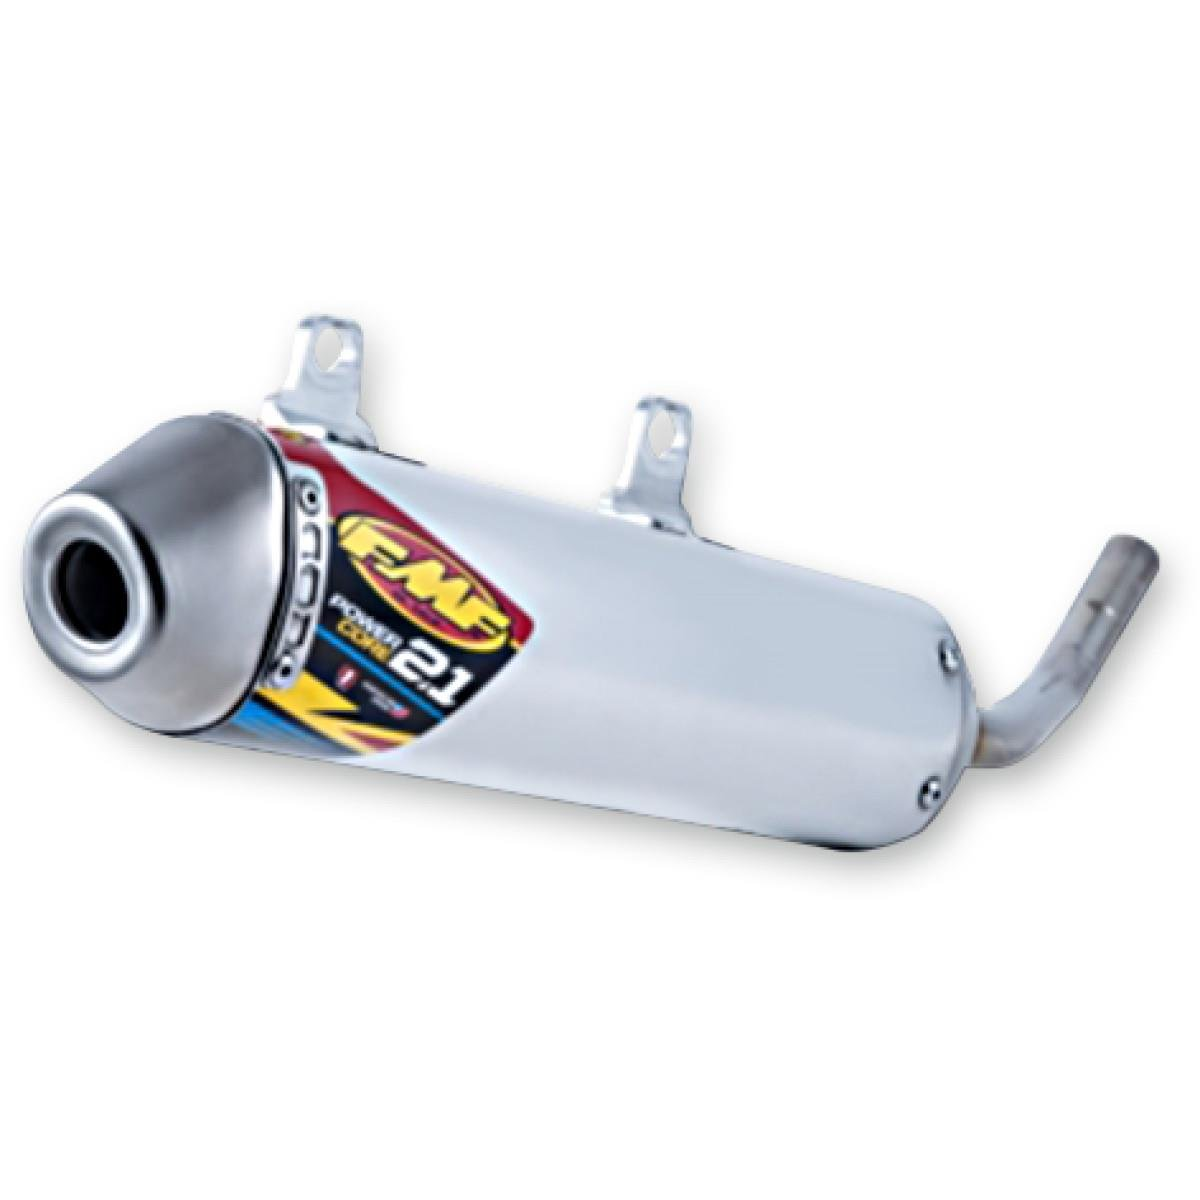 17-18 KTM 250SX: FMF Powercore 2.1 Silencer (Shorty)